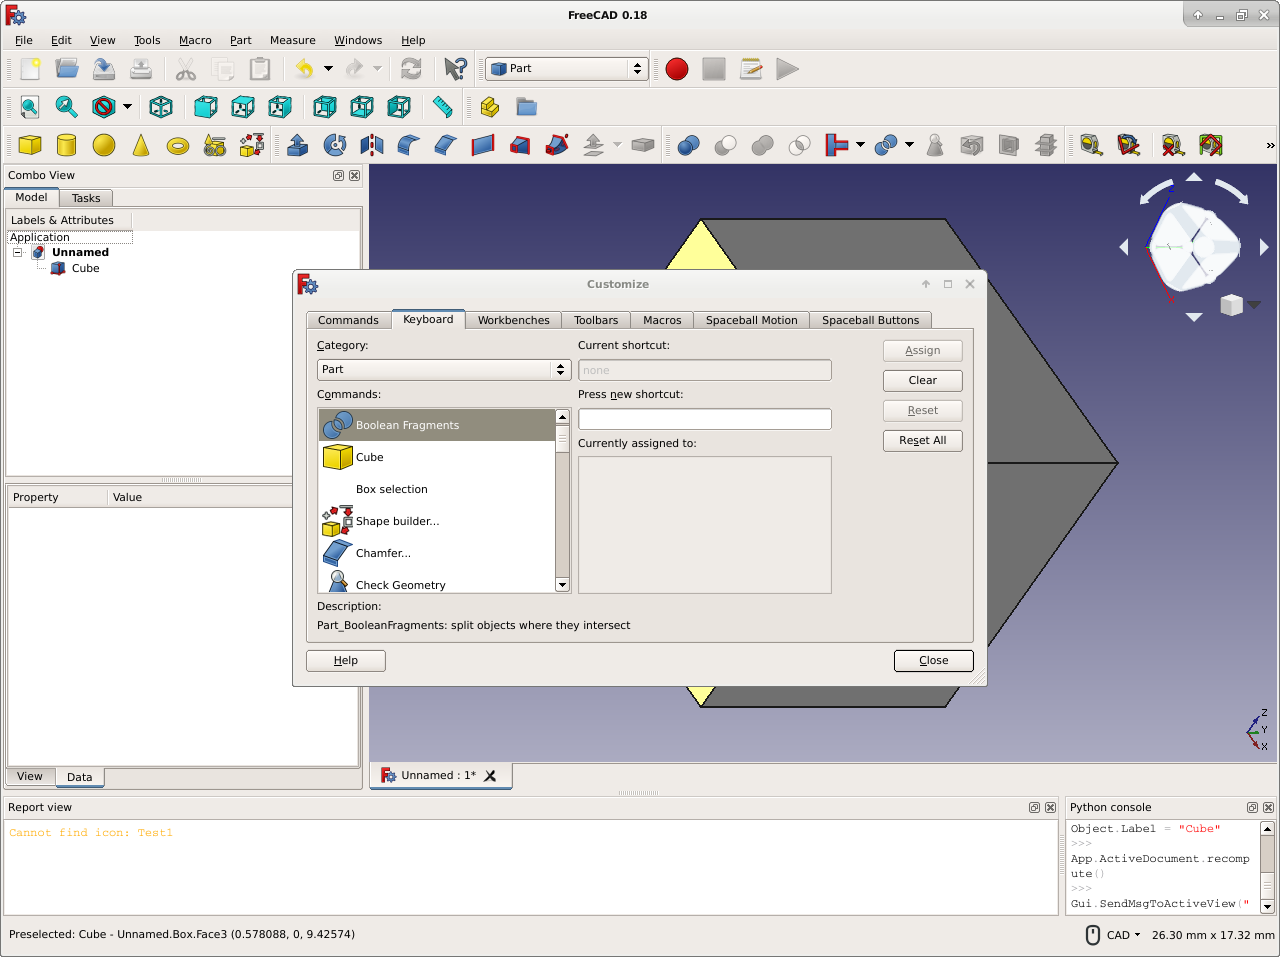 FreeCAD-v0-18-CustomizeInterface.png